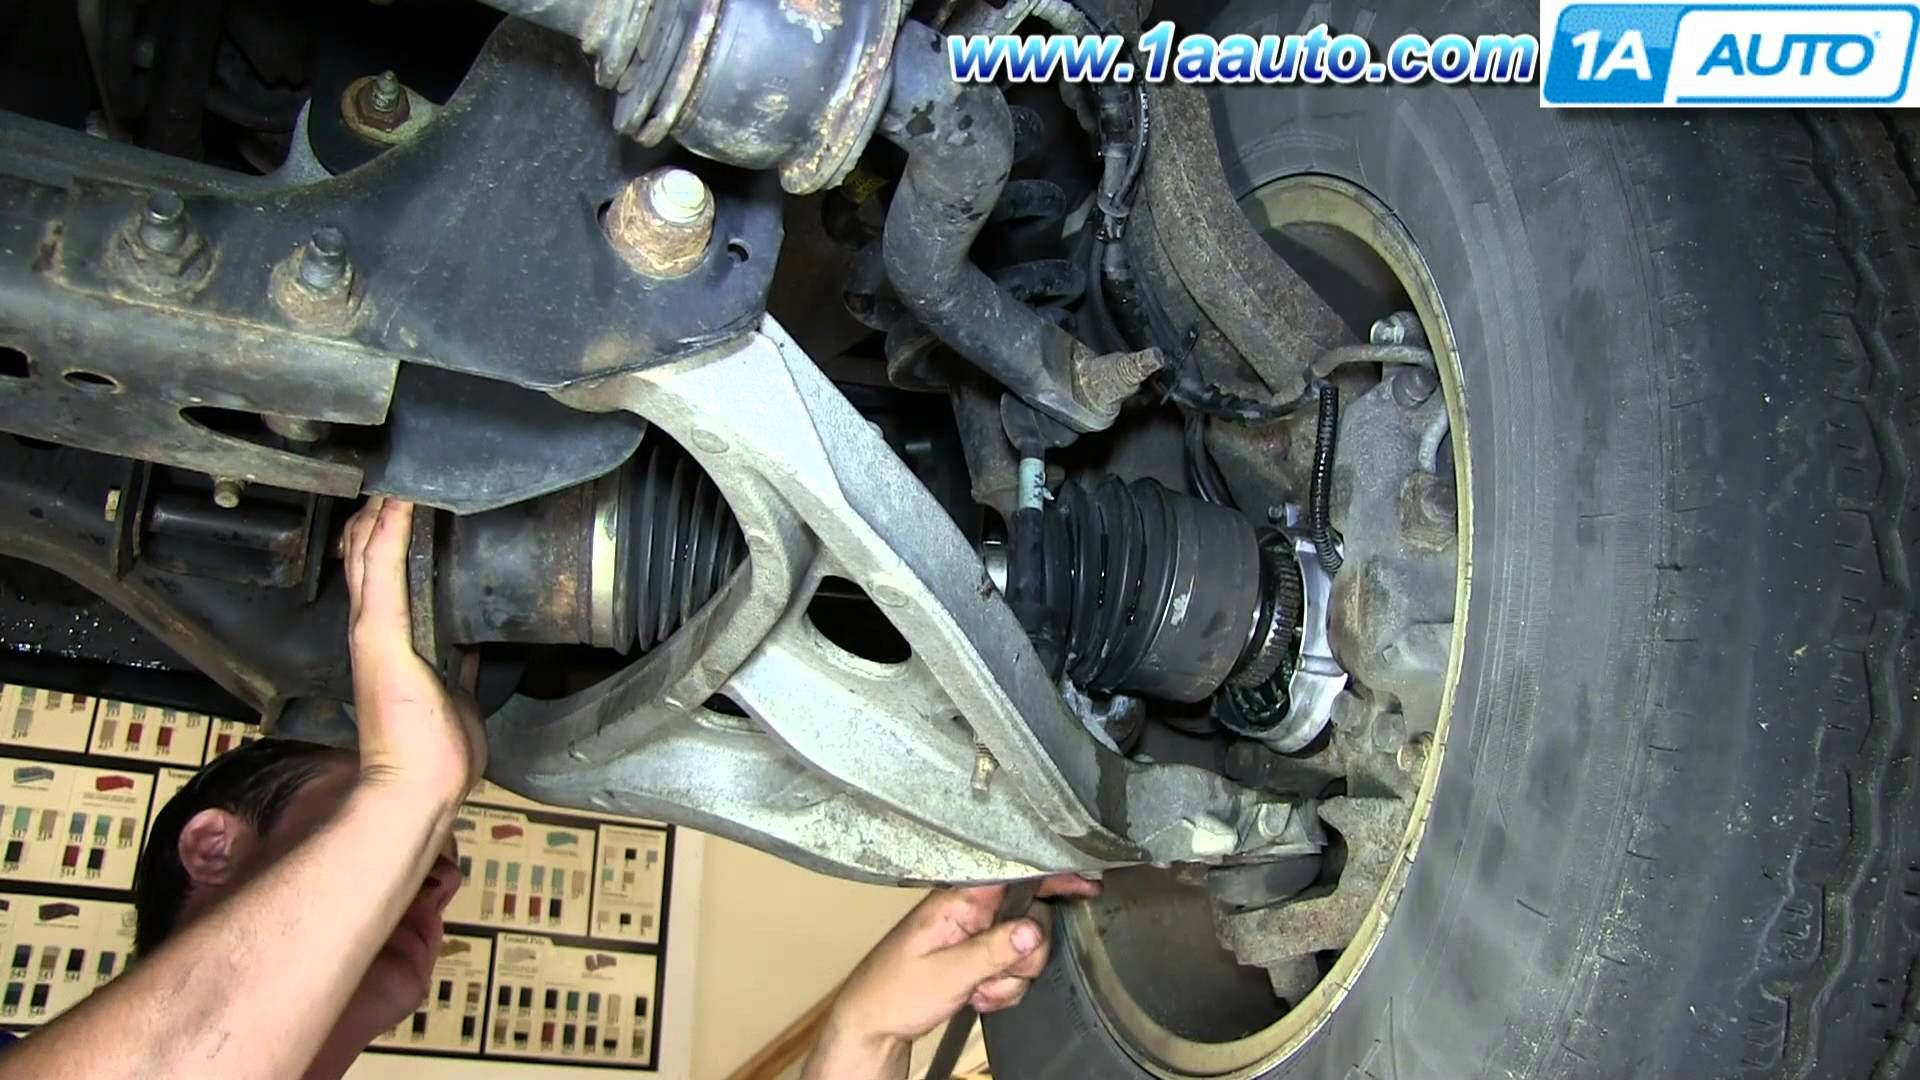 Pin on FORD EXPLORER 1998 / CAR MAINTENANCE TIPS